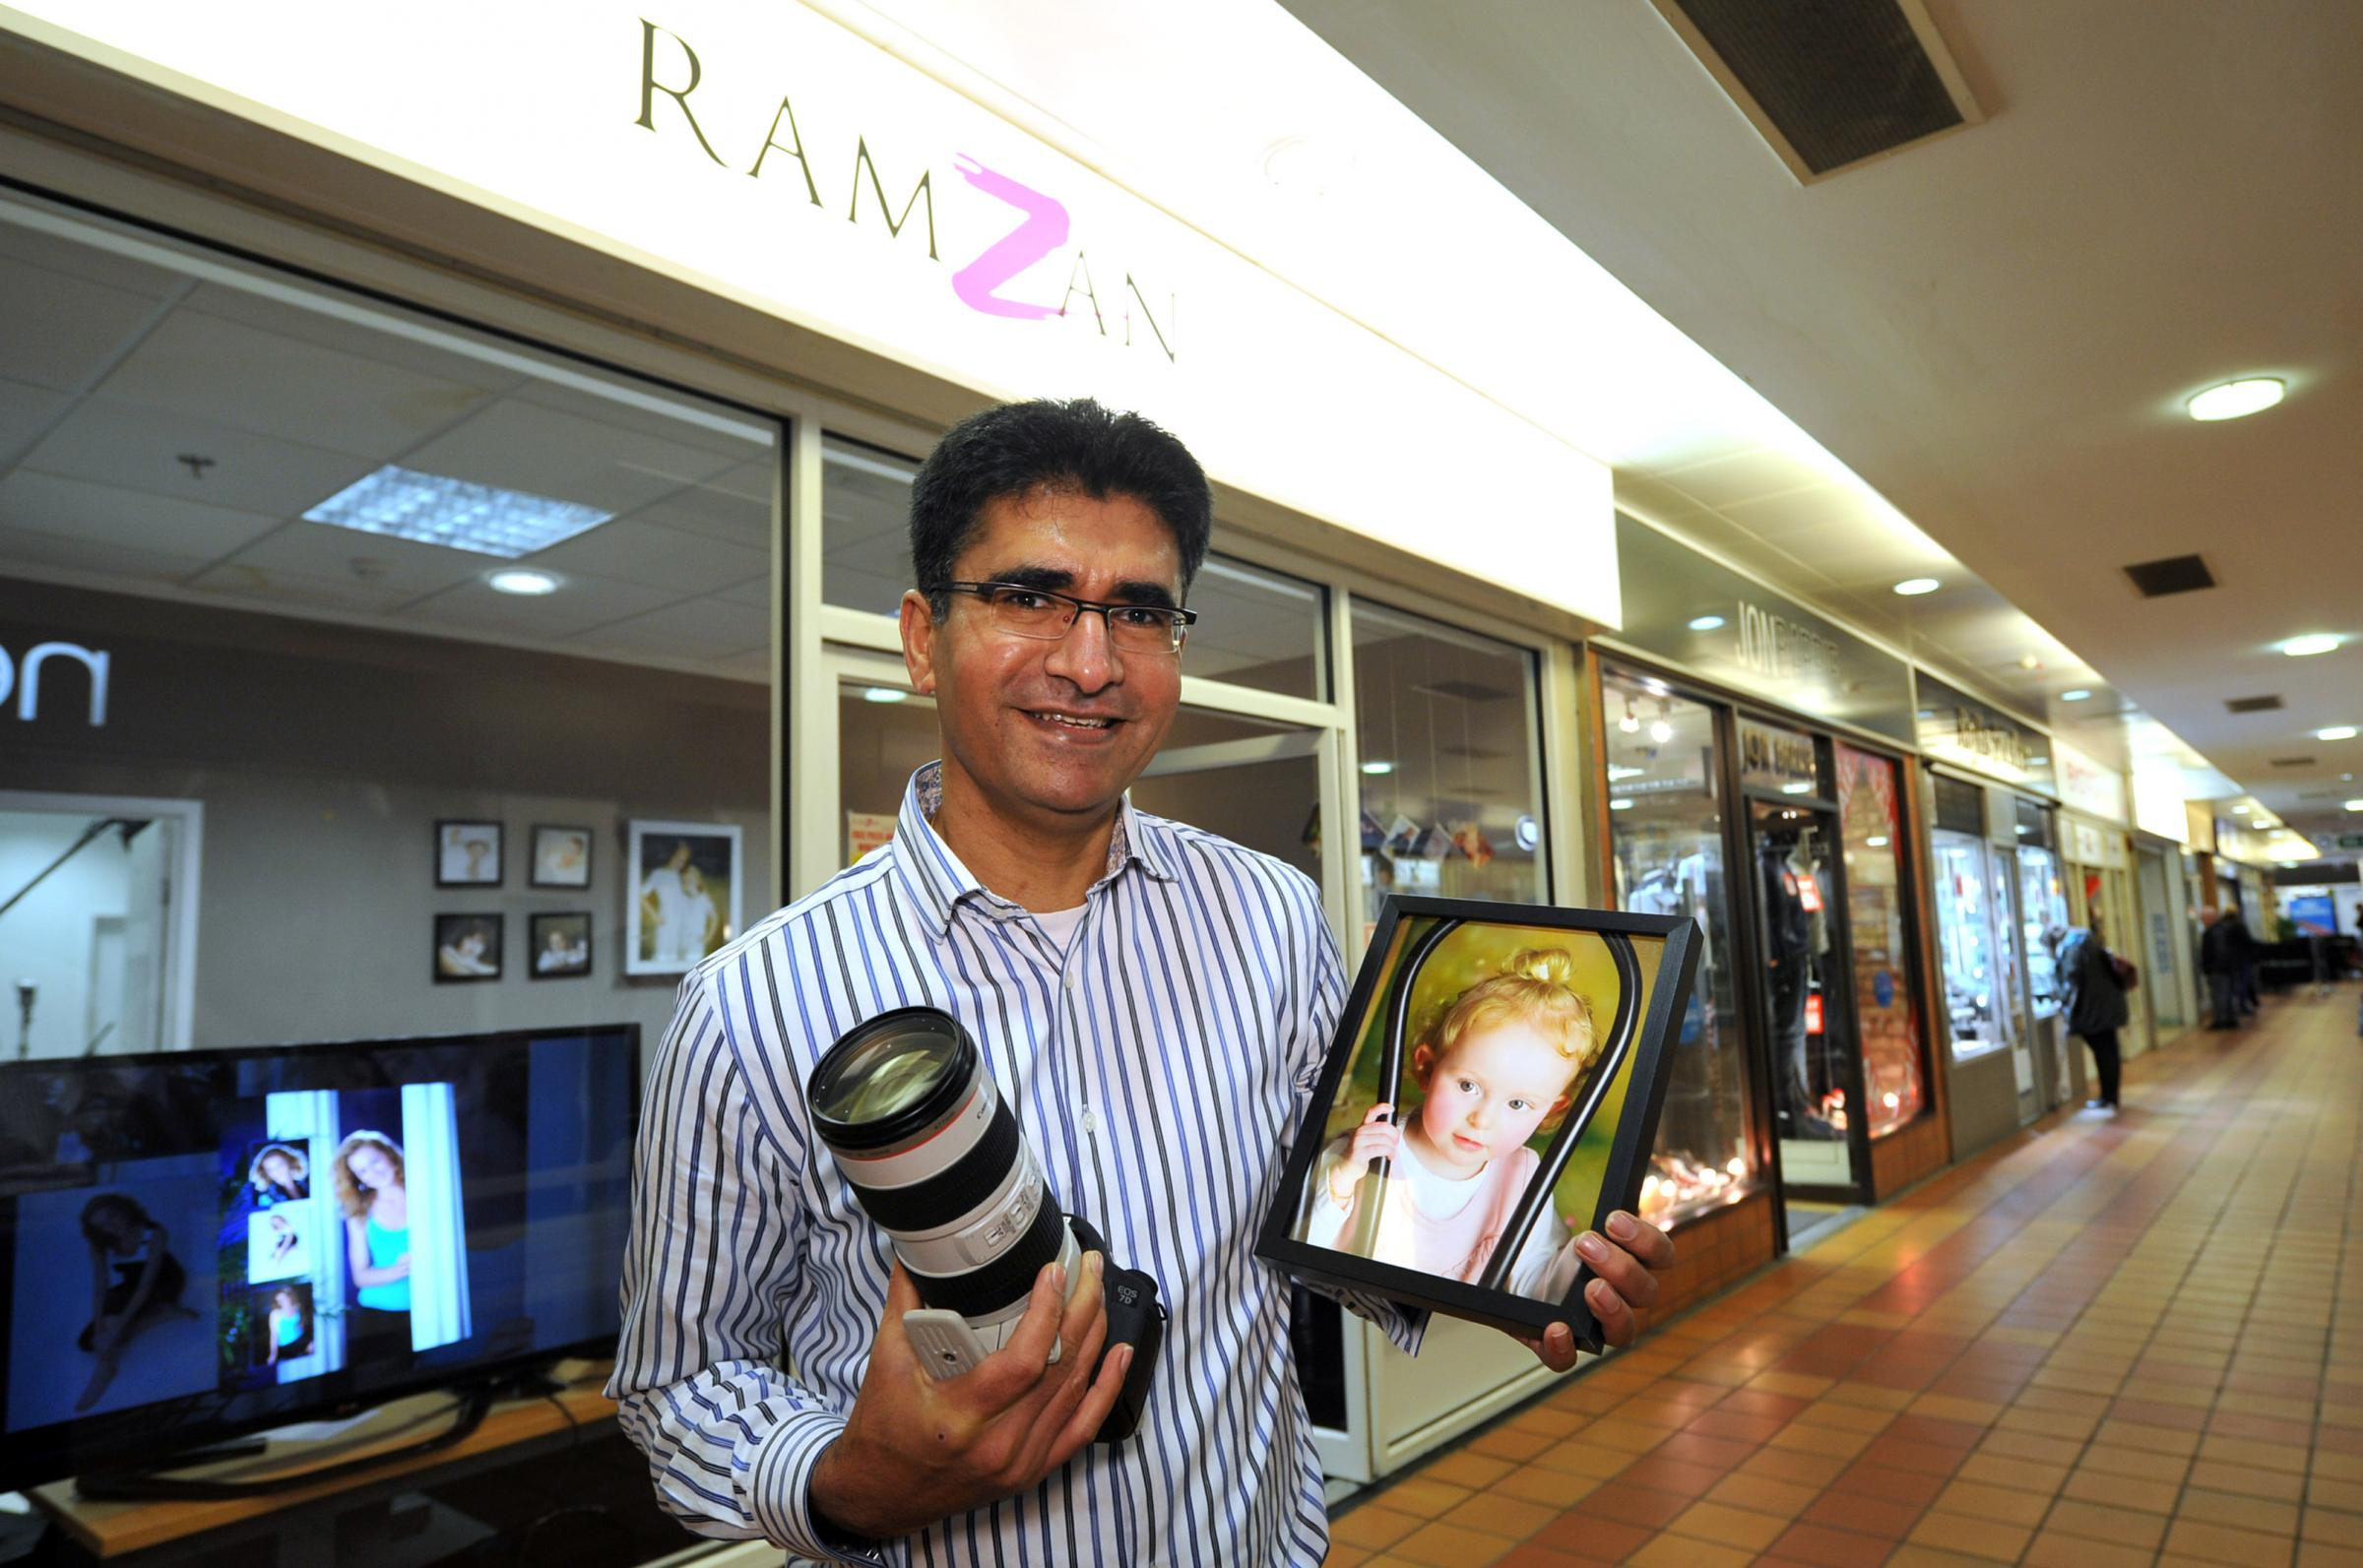 Akhtar Ramzan, of Ramzan Photographics, opens up his new shop in the Brunswick Arcade at Keighley's Airedale Shopping Centre